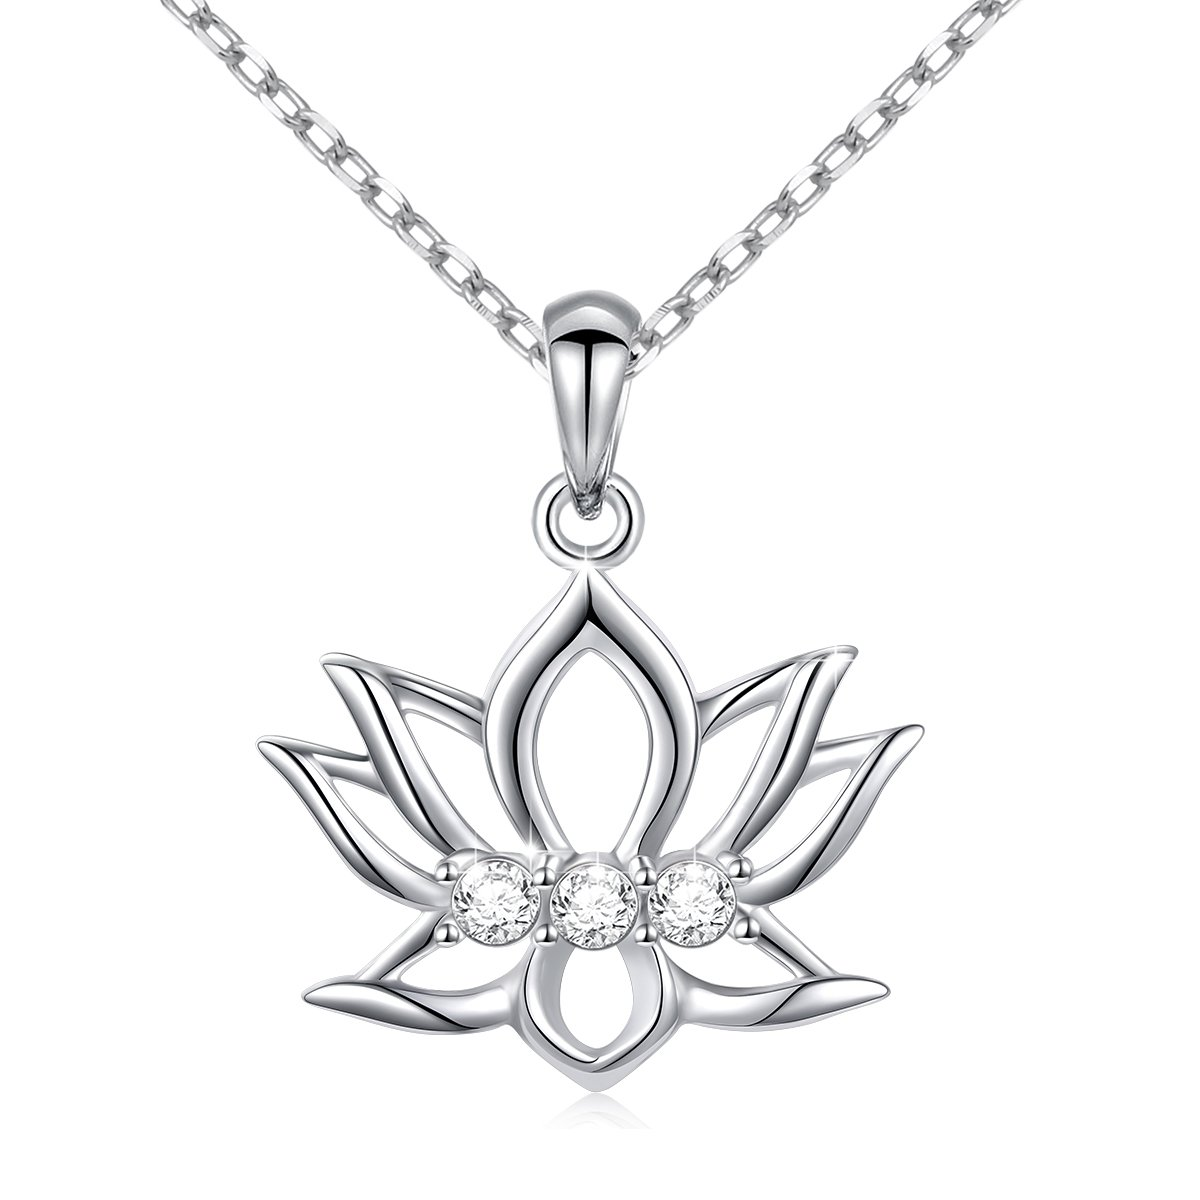 LINLIN FINE JEWELRY Lotus Necklace 925 Sterling Silver White CZ Reminders New Beginnings Lotus Pendant Necklace Gift for Women Girls, 18''